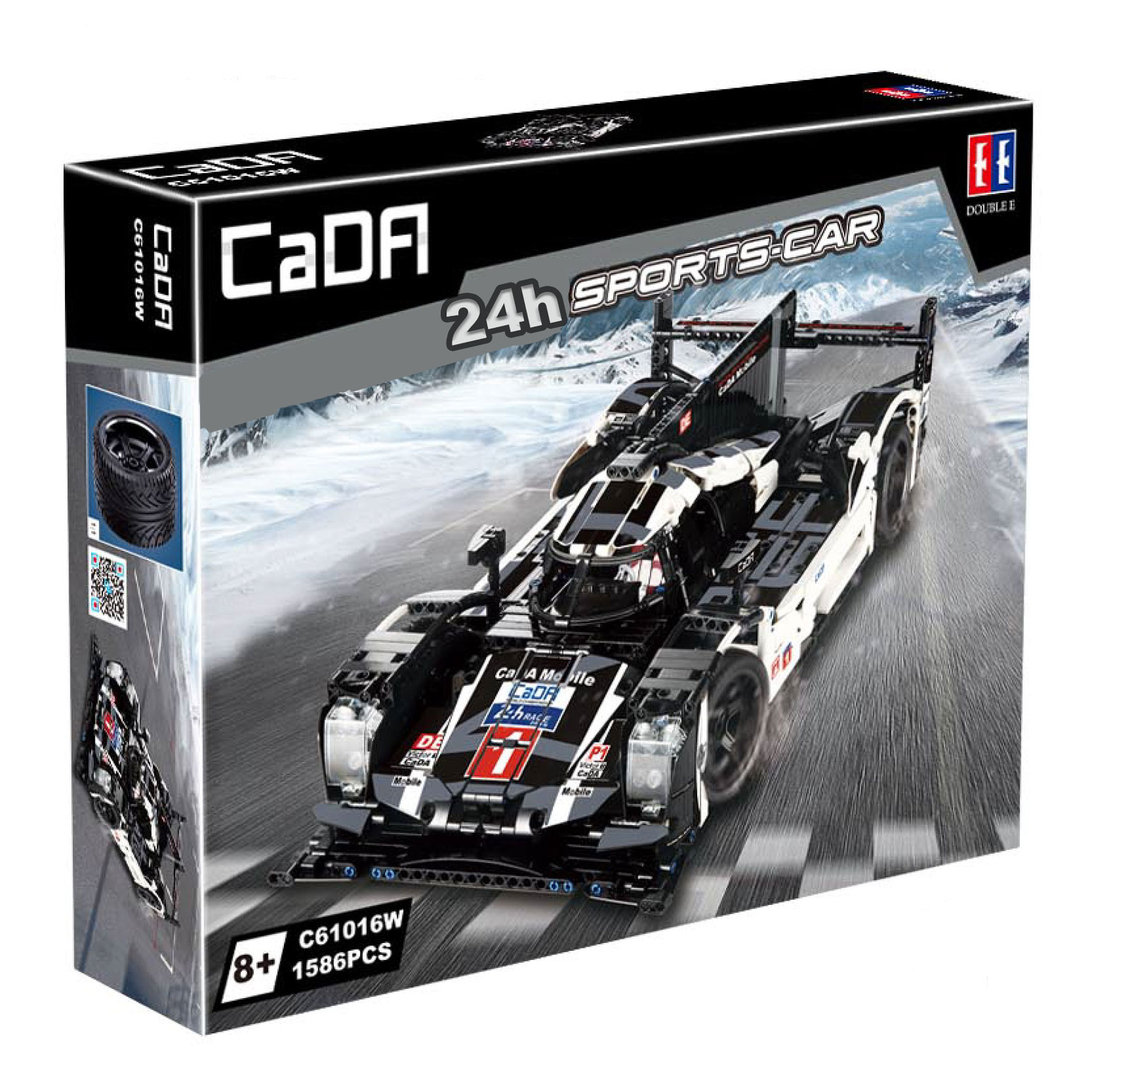 CaDA / Double E C61016W deTech 24h Racer Langstrecken-Sports-Car